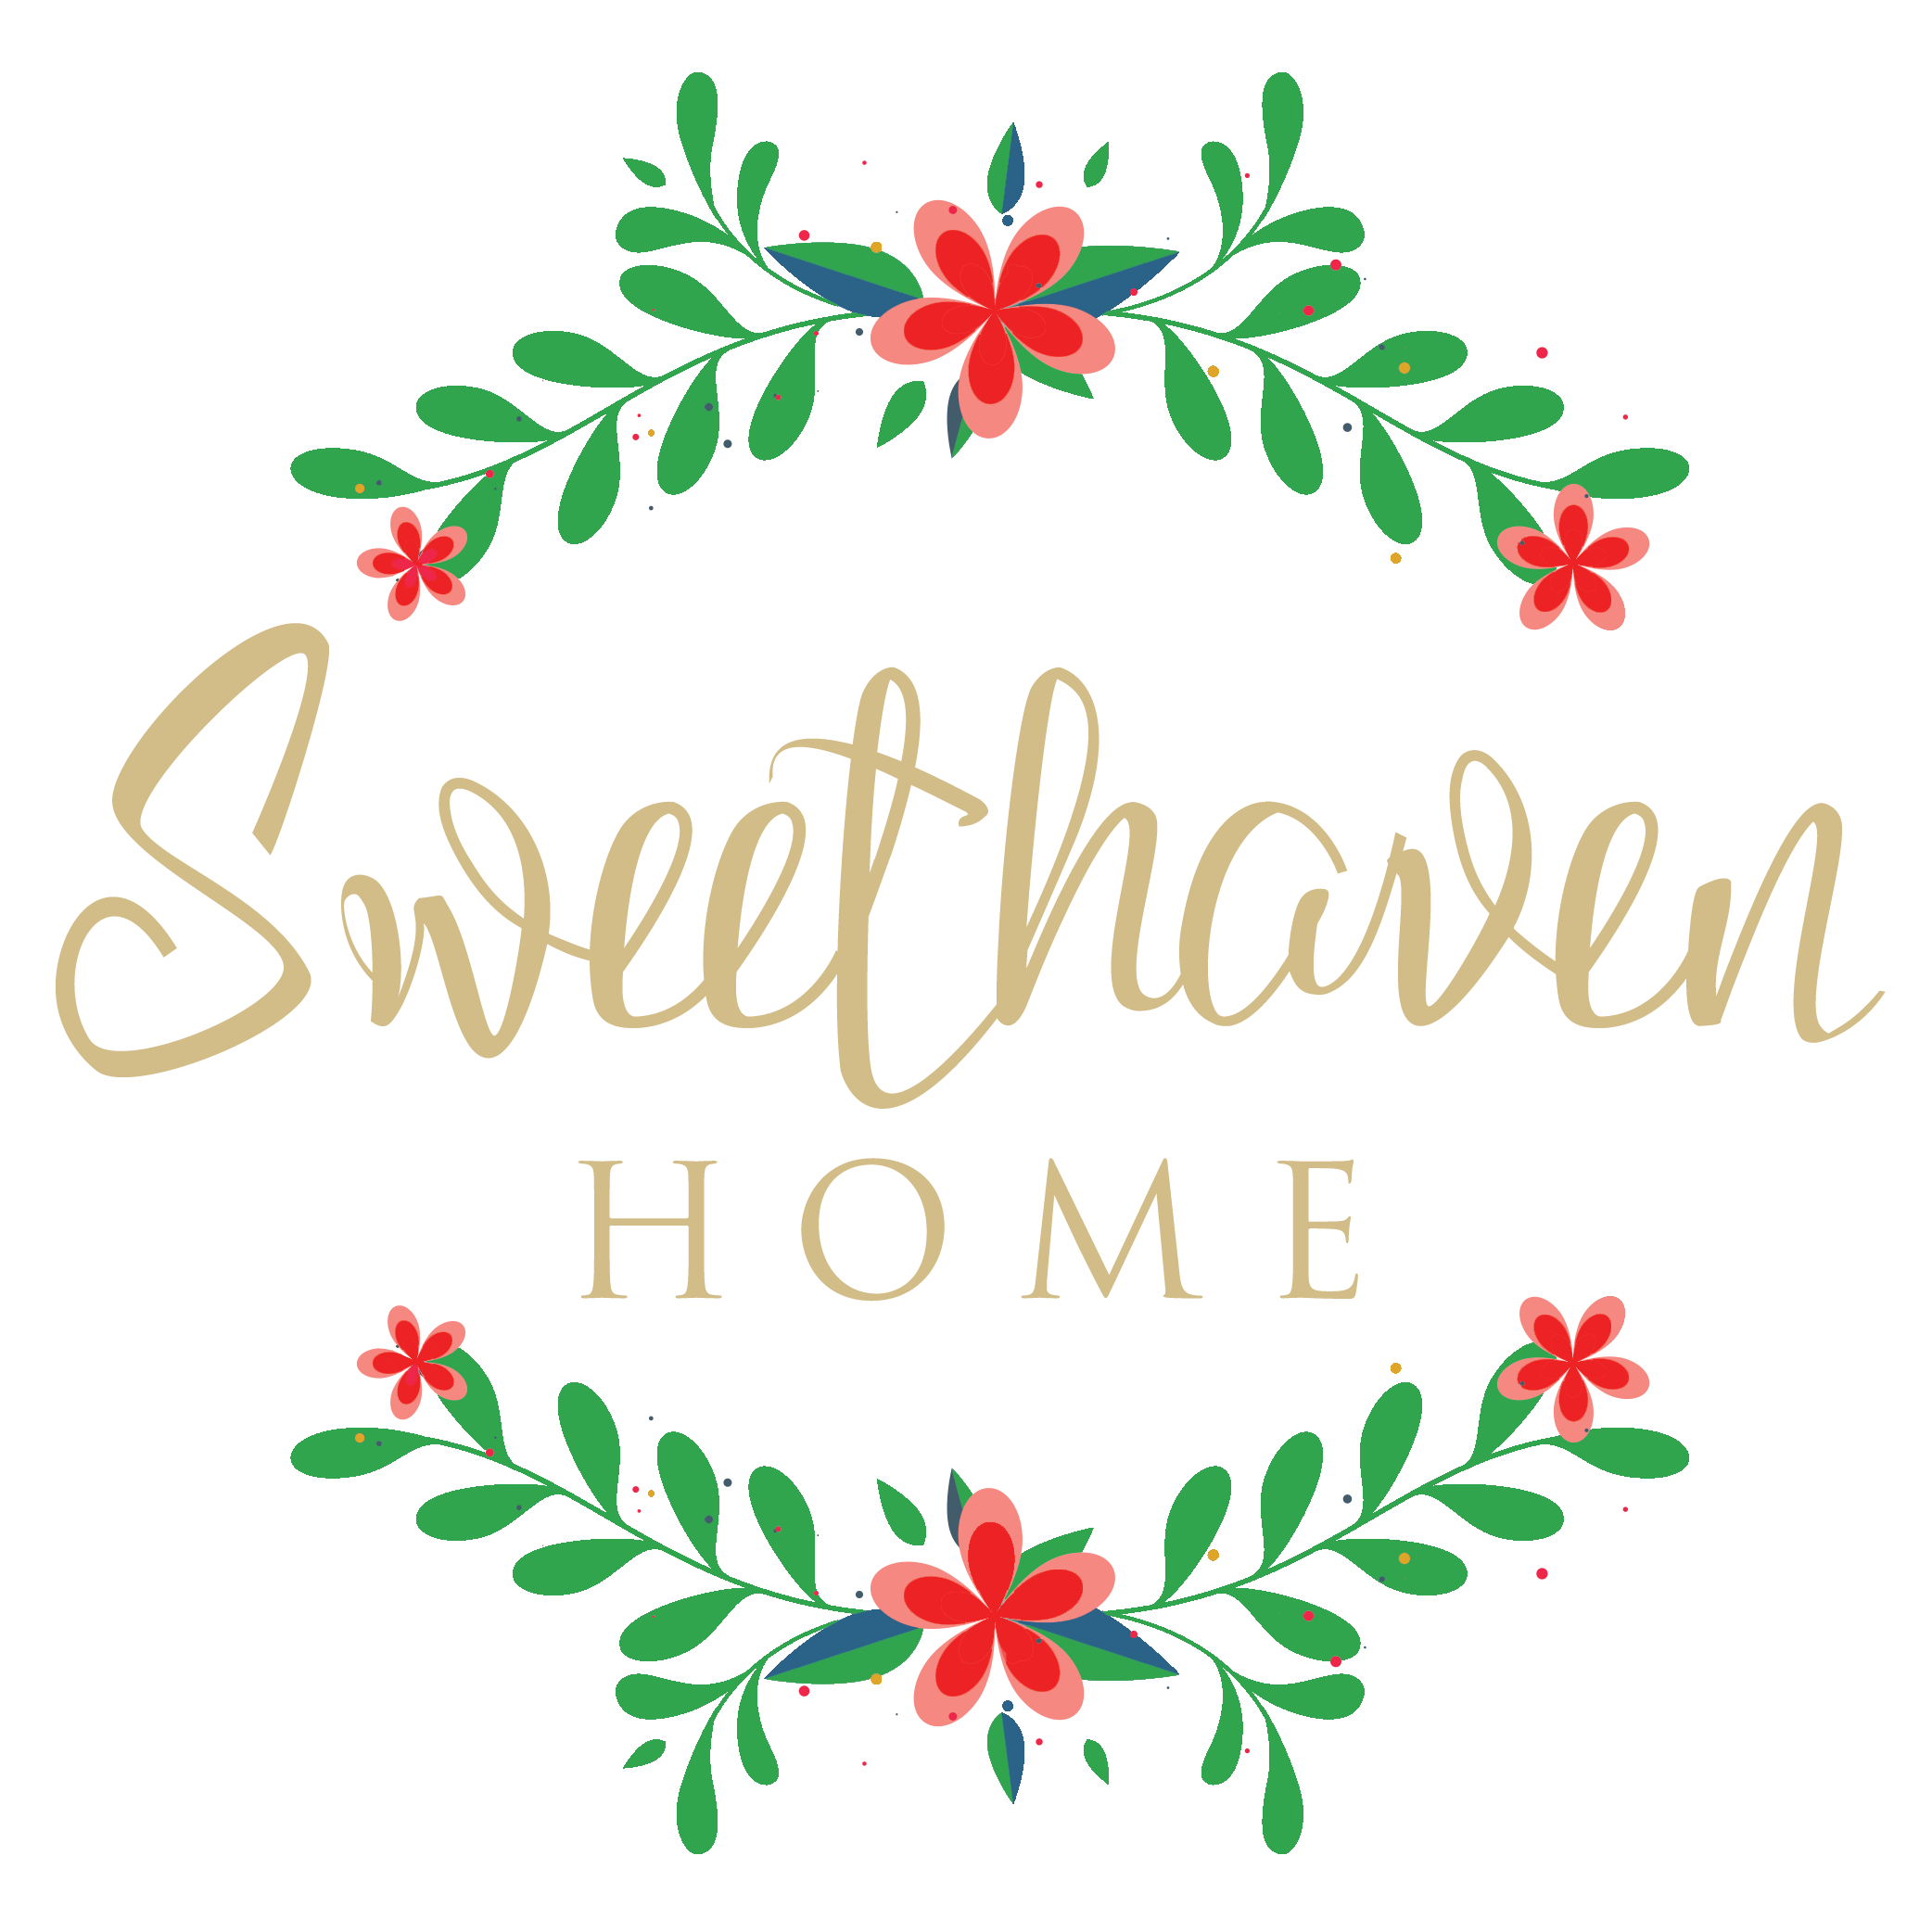 sweethavenhomev2.png